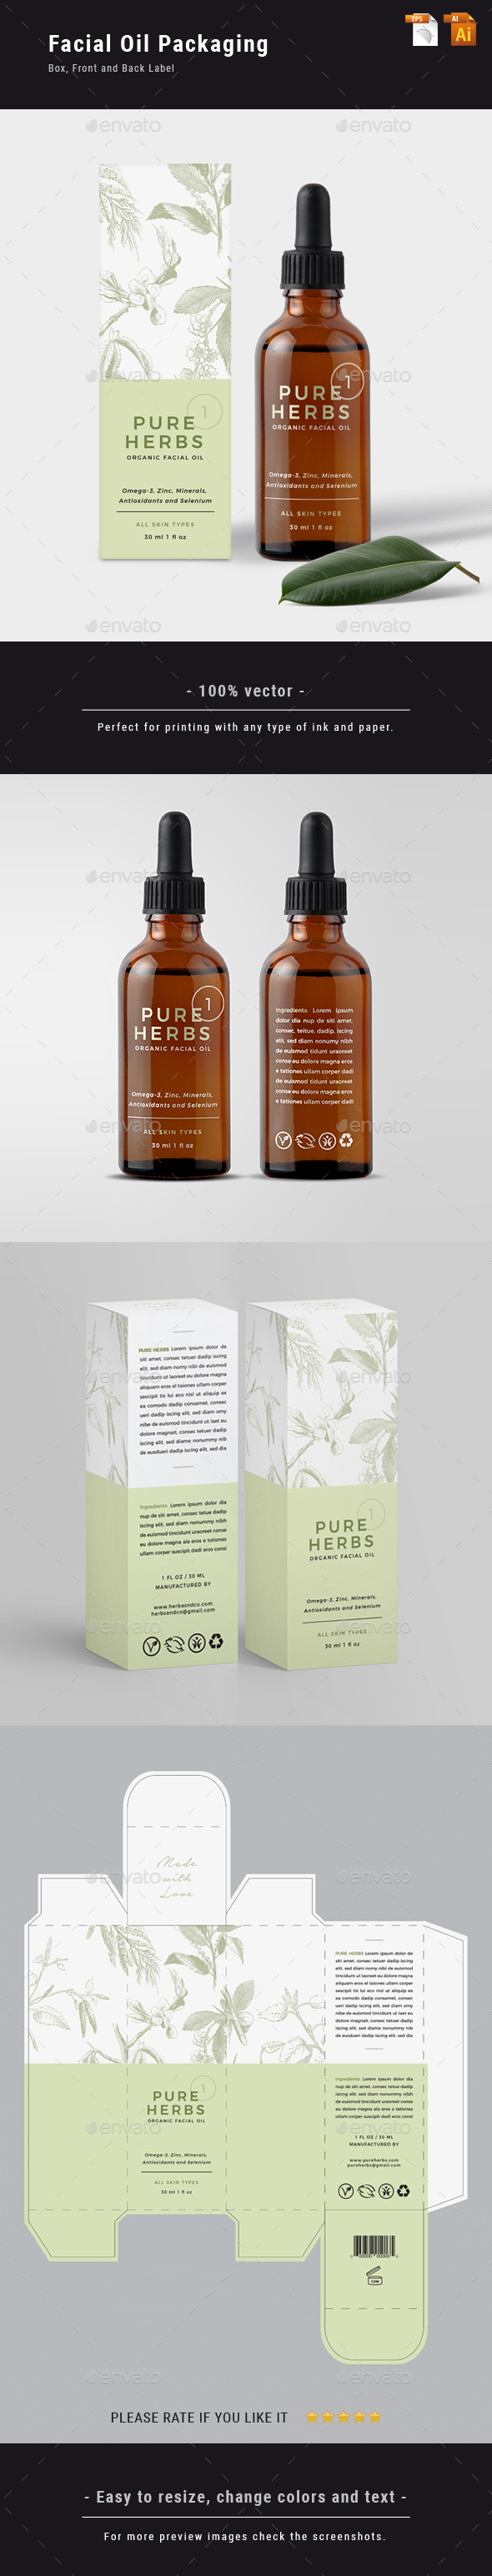 Organic Facial Oil Packaging - Packaging Print Templates